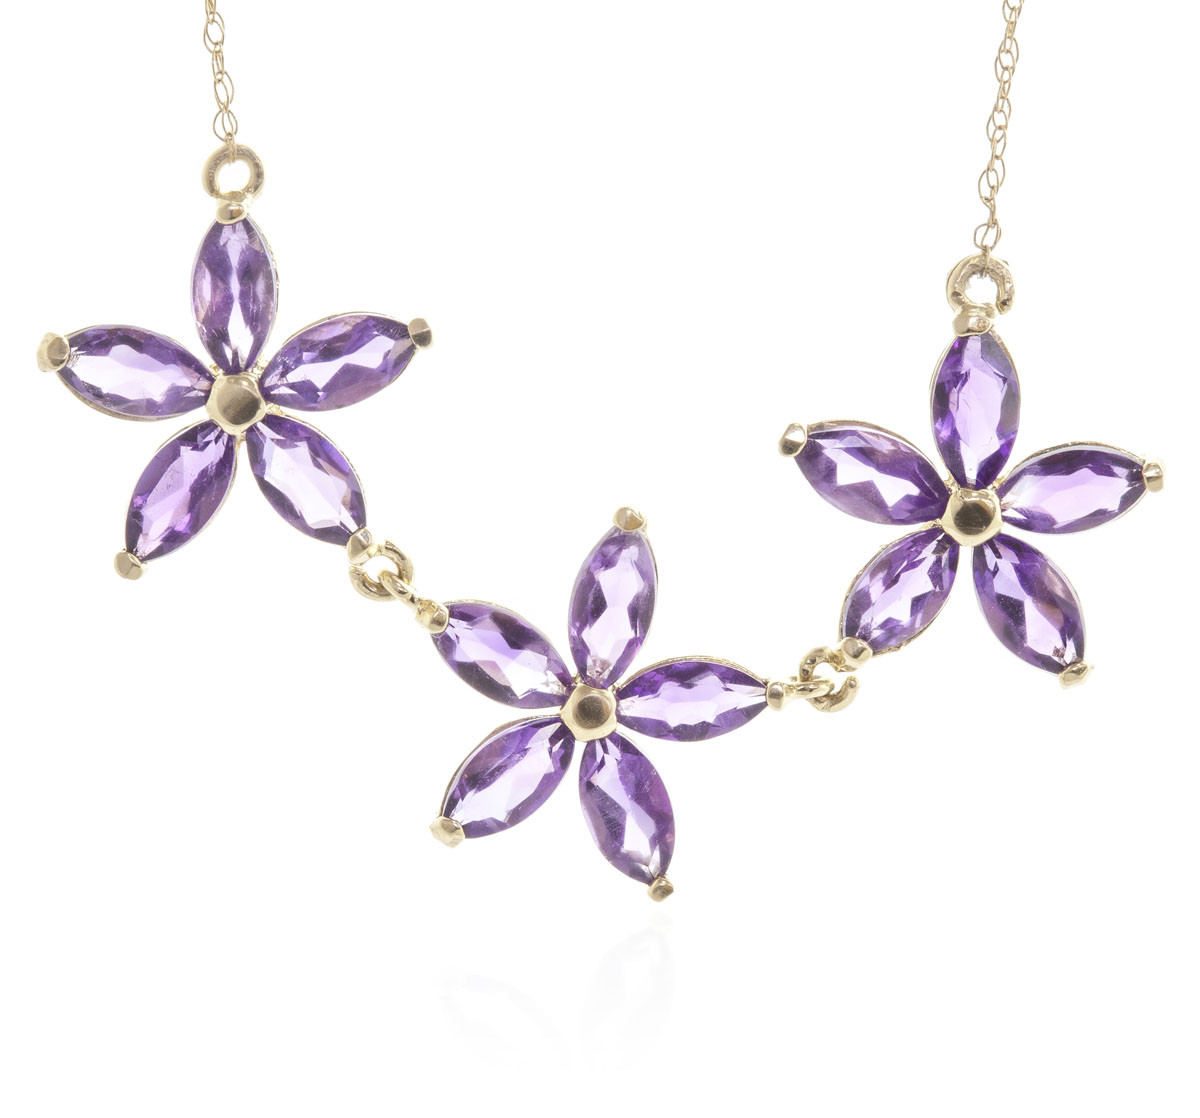 Amethyst Daisy Chain Pendant Necklace 4.2 ctw in 9ct Gold